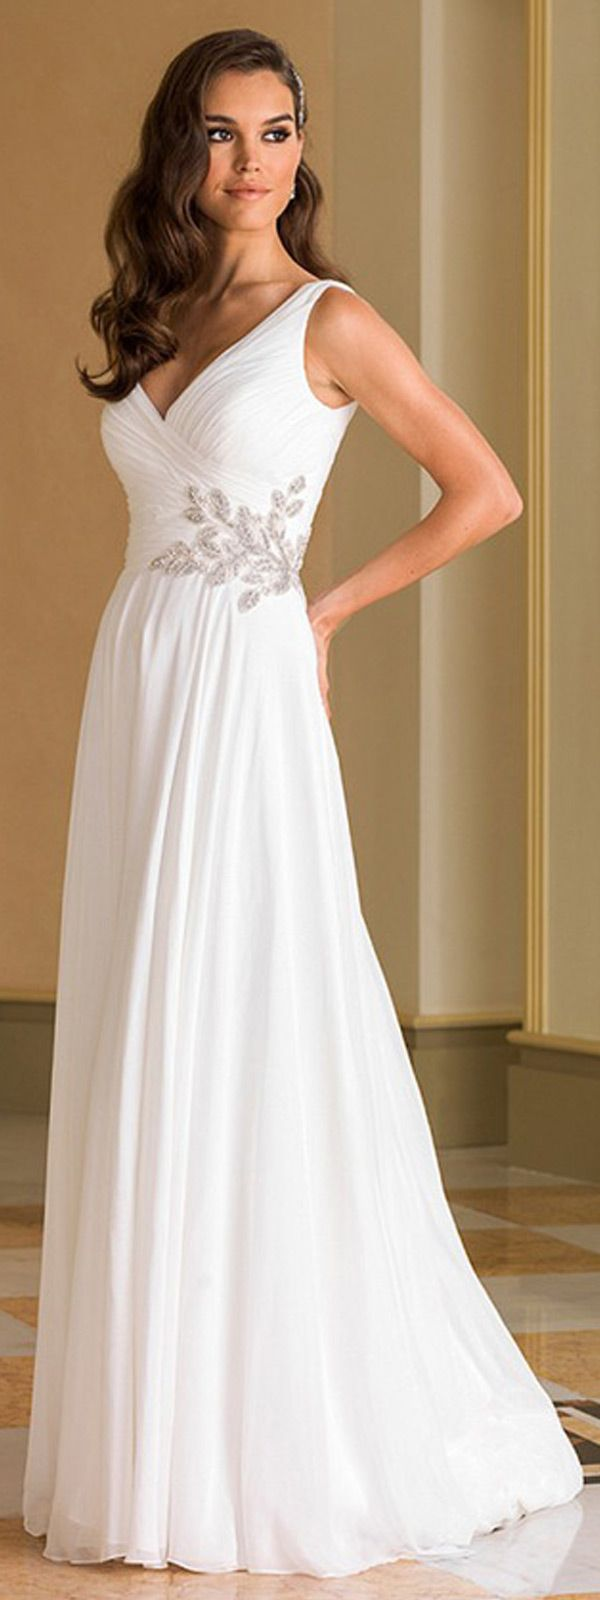 Best 25 pleated wedding dresses ideas only on pinterest flowing chiffon stretch satin v neck a line wedding dresses with pleats ombrellifo Image collections